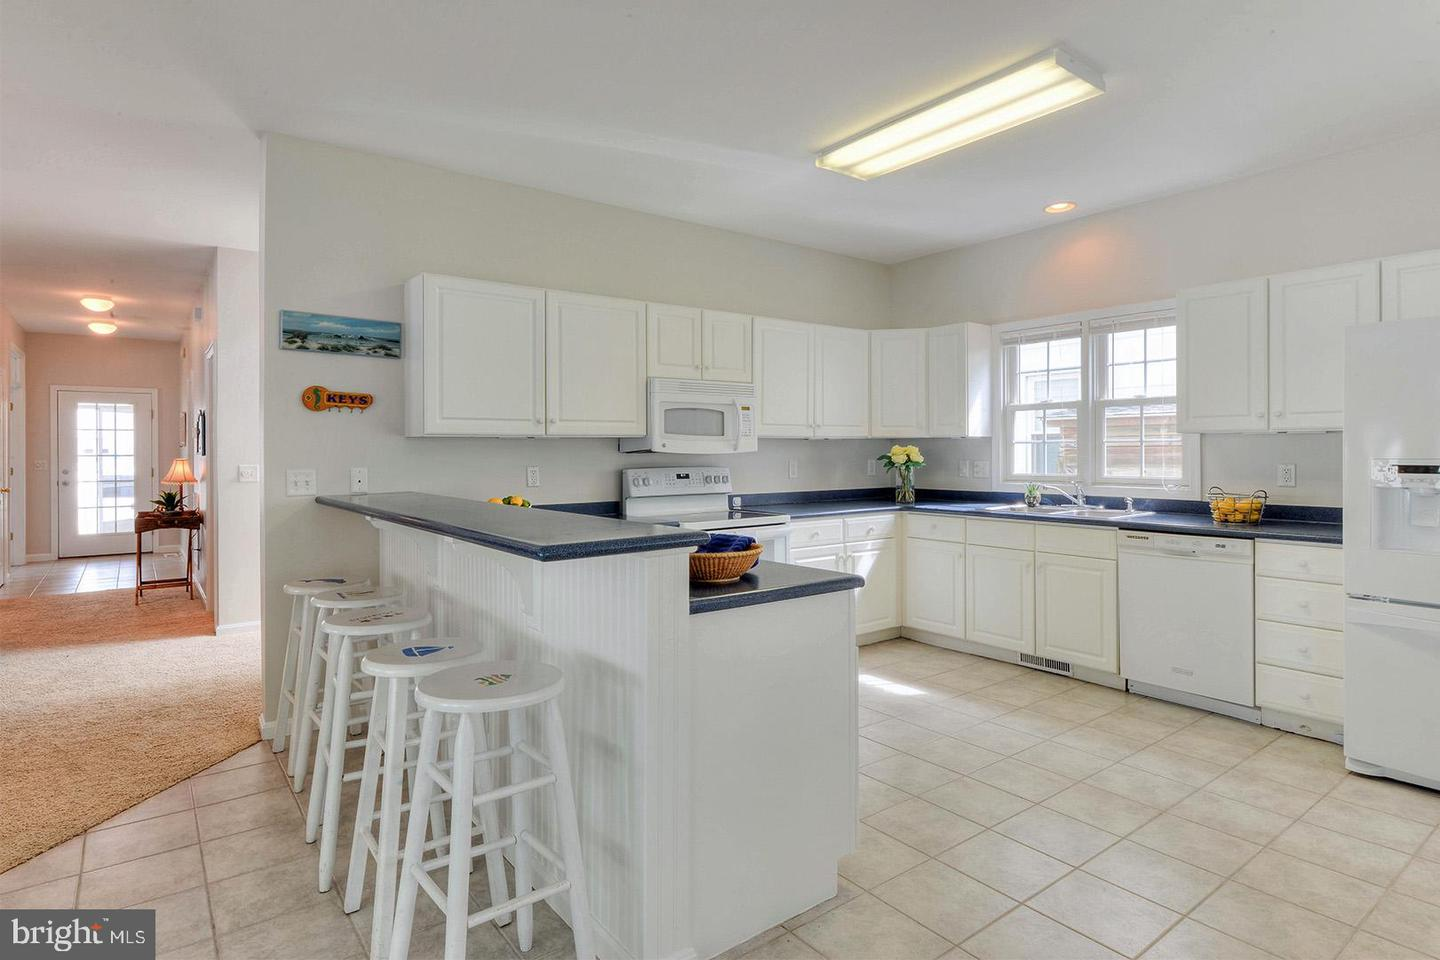 DESU139874-301711164204-2019-05-16-07-32-35 10 New Castle St | Rehoboth Beach, DE Real Estate For Sale | MLS# Desu139874  - Rehoboth Beach Real Estate - Bryce Lingo and Shaun Tull REALTORS, Rehoboth Beach, Delaware